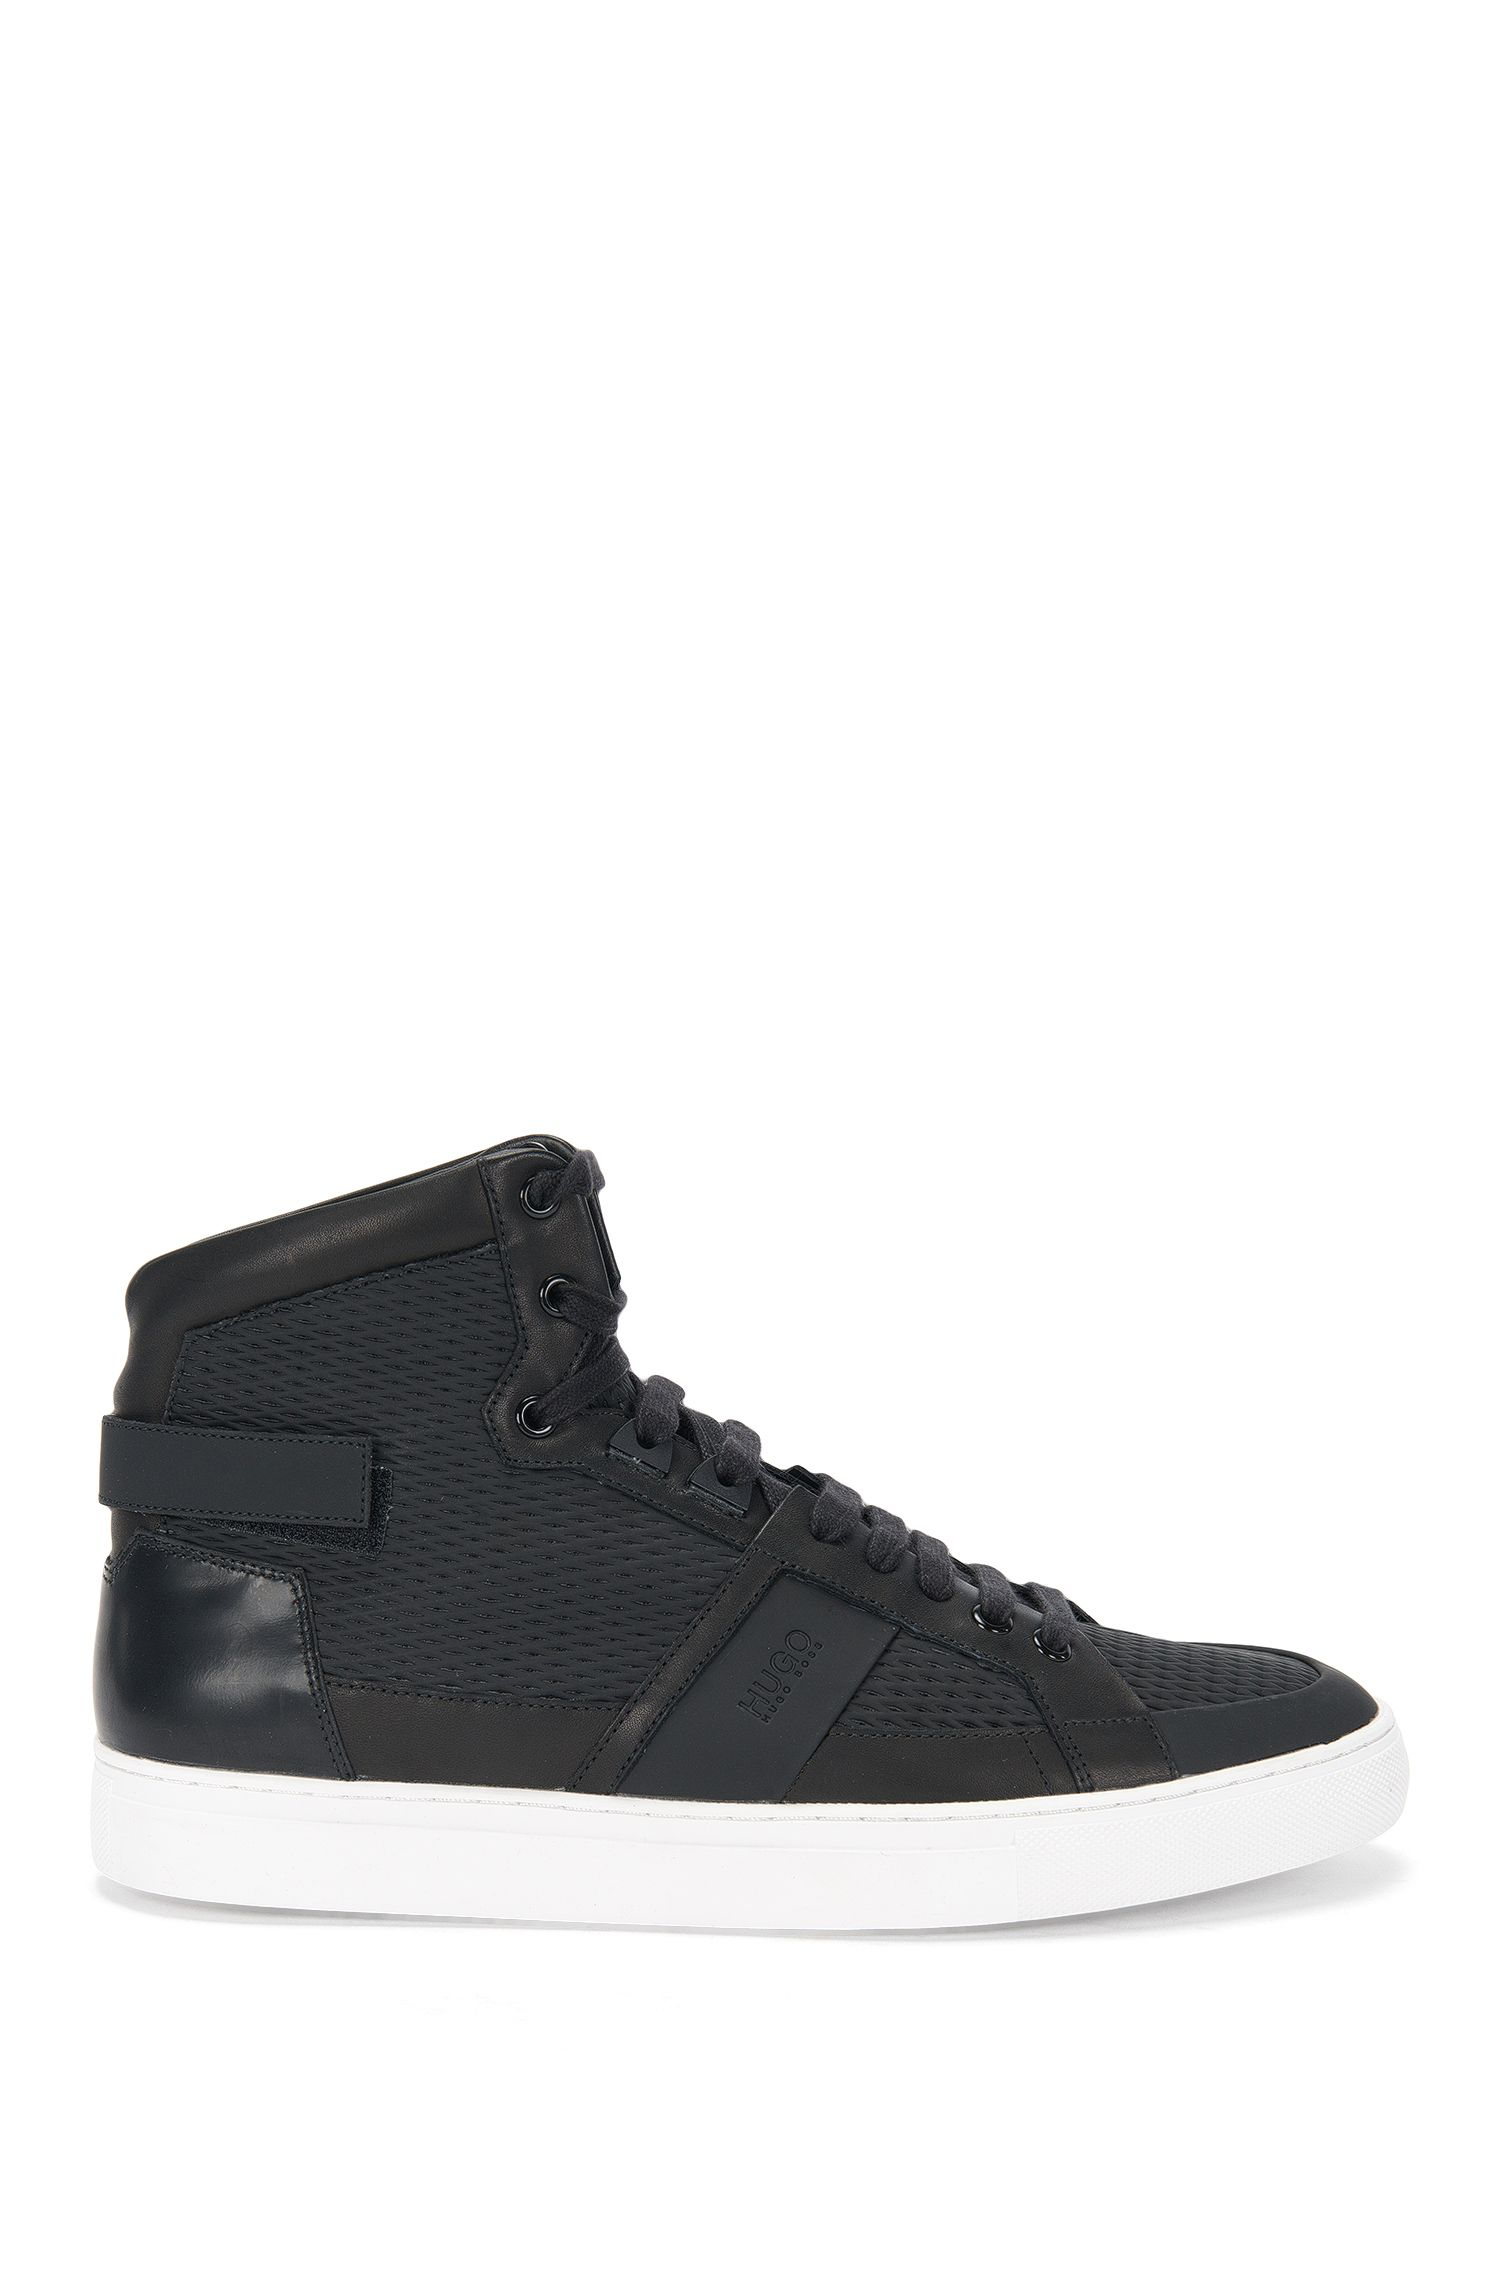 Leather High-Top Sneaker | Futurism Hito ltrb